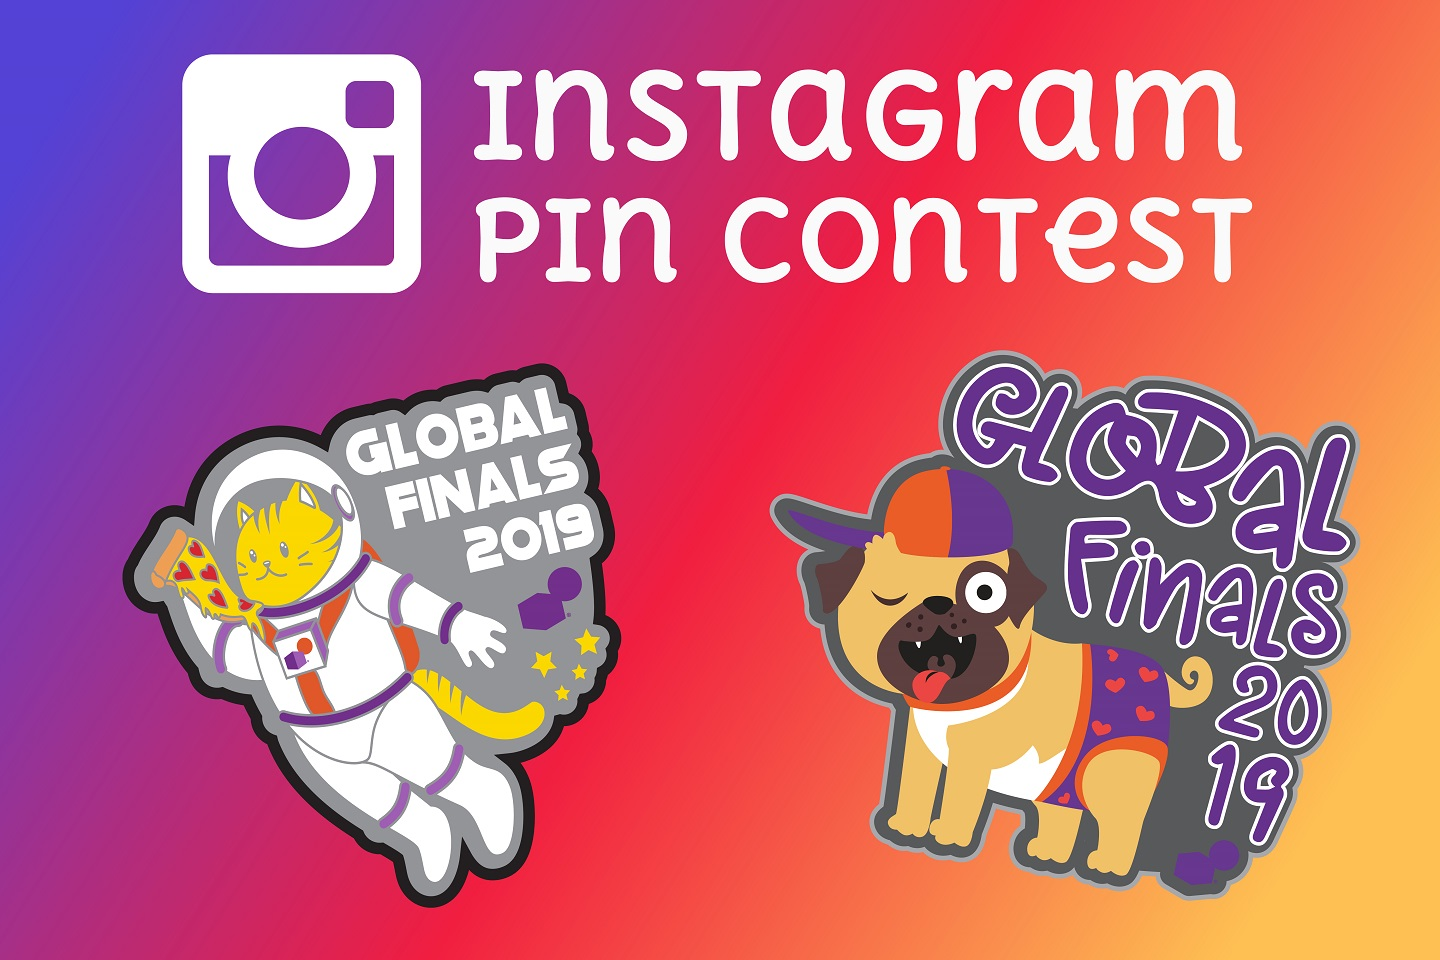 1dc1671dd51 What about pins with one-eyed pugs wearing underpants or cats from space  that love pizza  Then you ll want to follow us on Instagram at Global  Finals 2019 ...